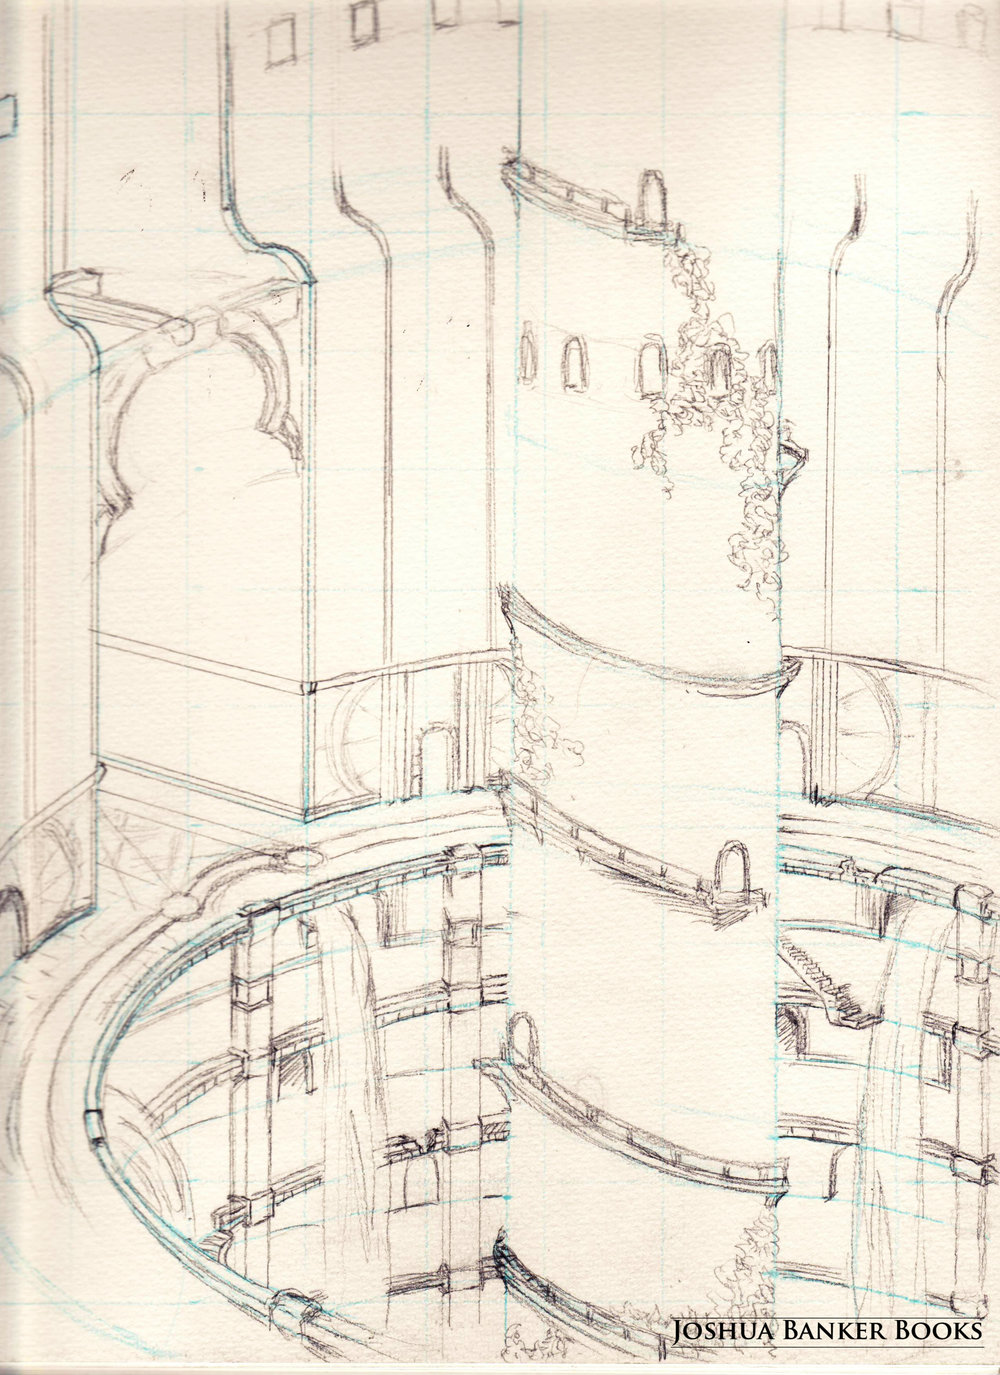 Stairwell Interior (sketch)